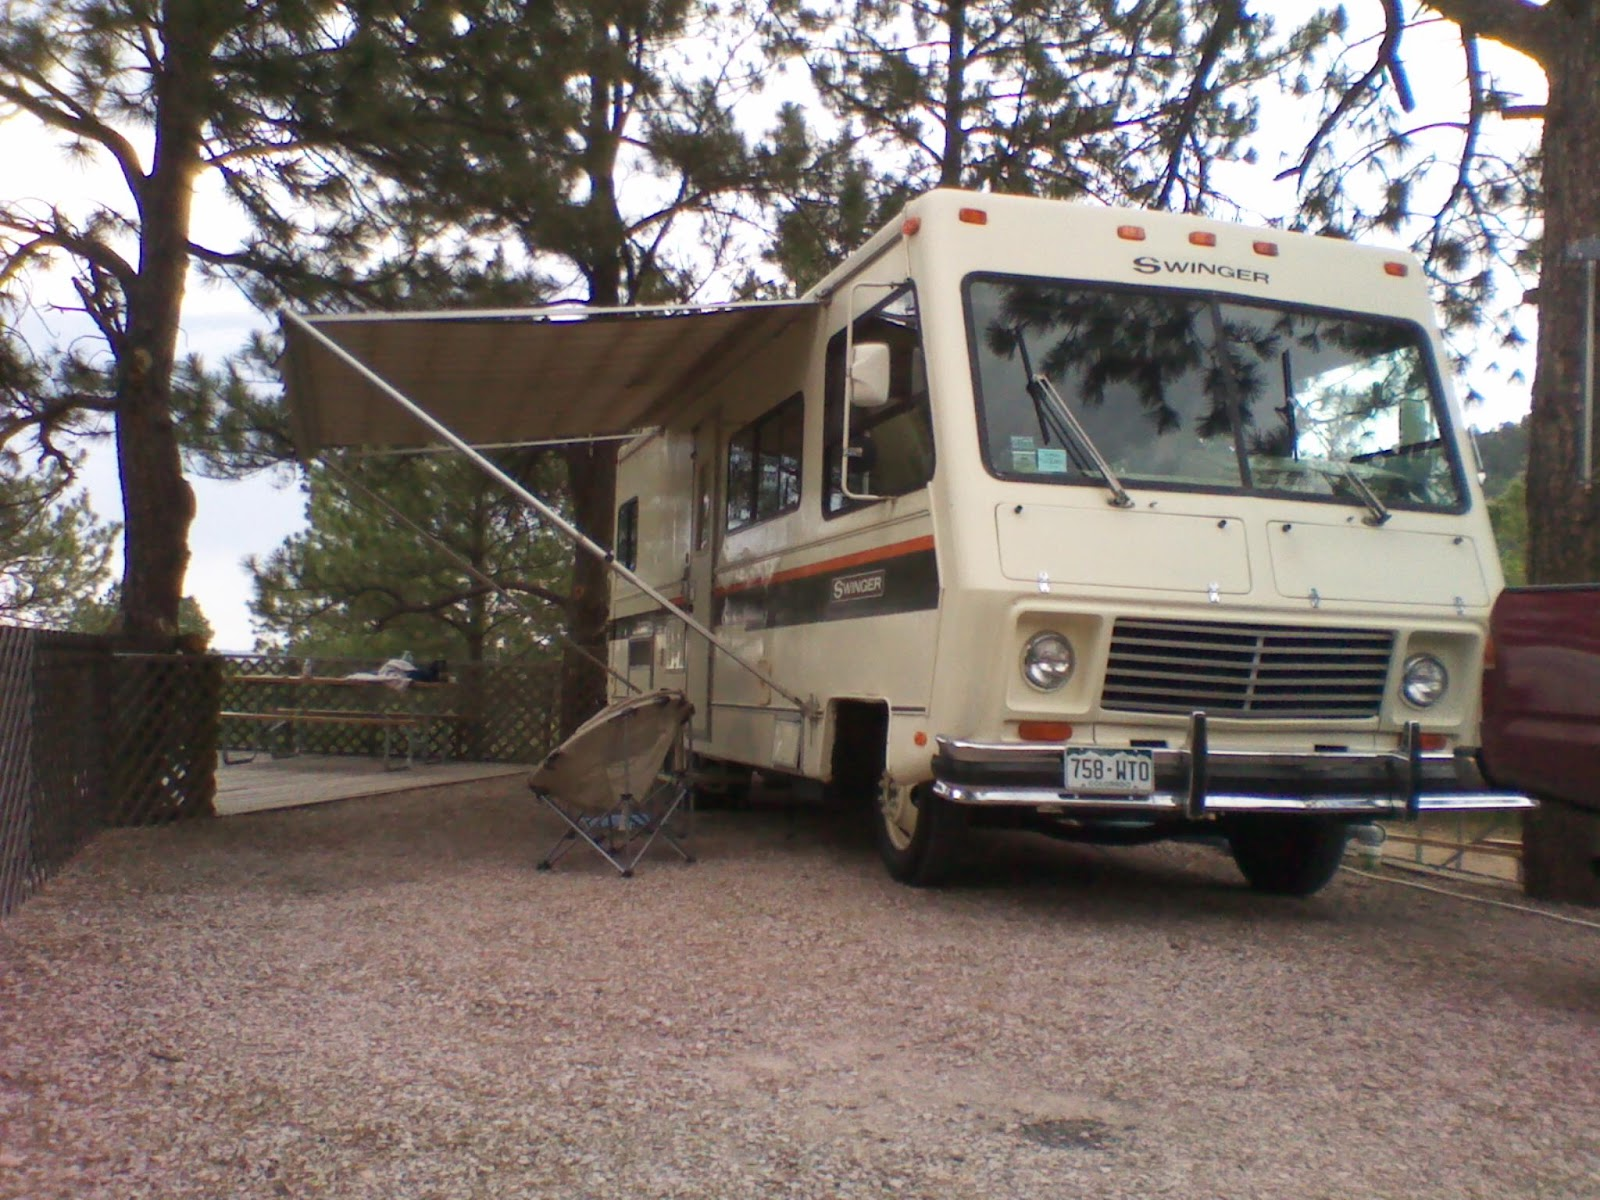 My Vintage 1978 Georgie Boy Swinger Executive Lounge Motorhome Duo Therm Thermostat Wiring Diagram 1979 Nu Wa Picture Shot While Camping For The First Time In This Coach July Of 2011